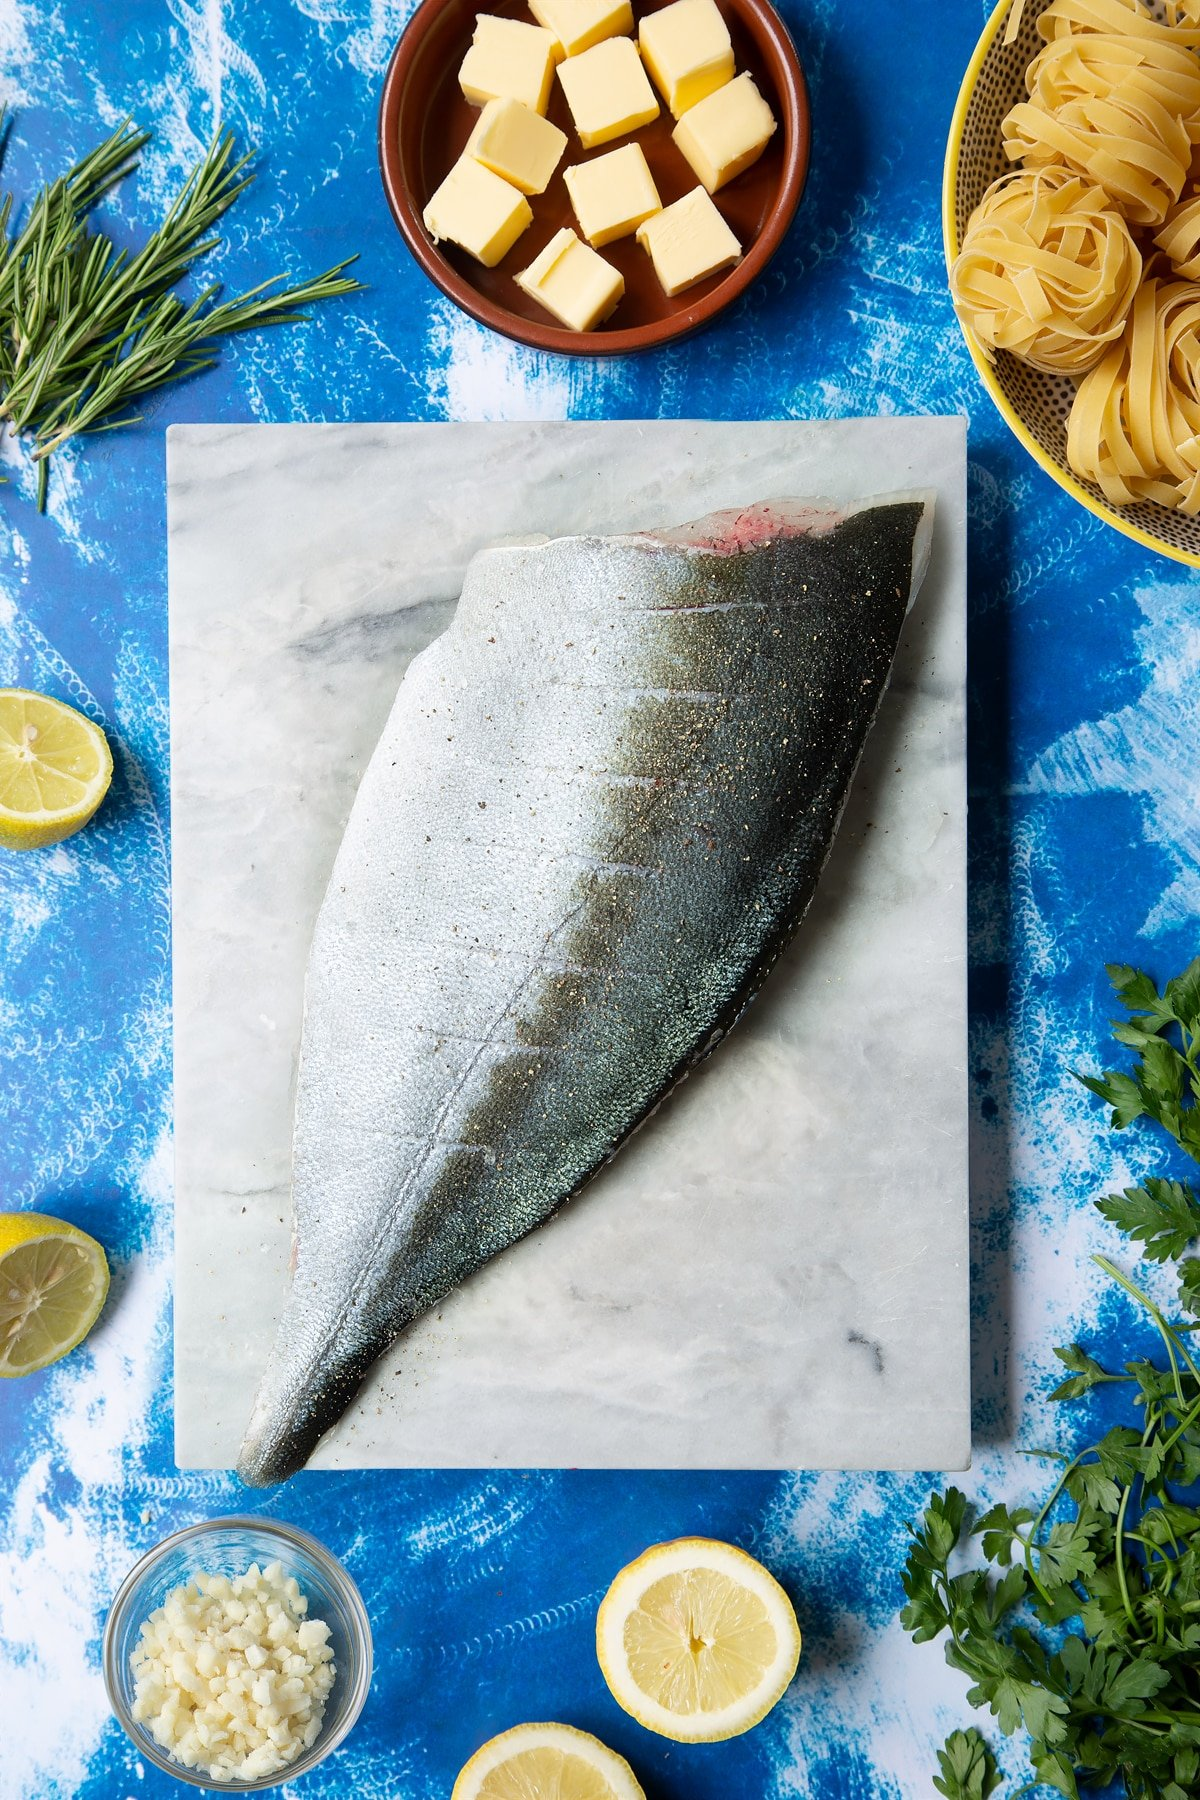 A Dutch Yellowtail fillet on a marble board, skin side up. The fish is seasoned with salt and pepper and the skin in scored.